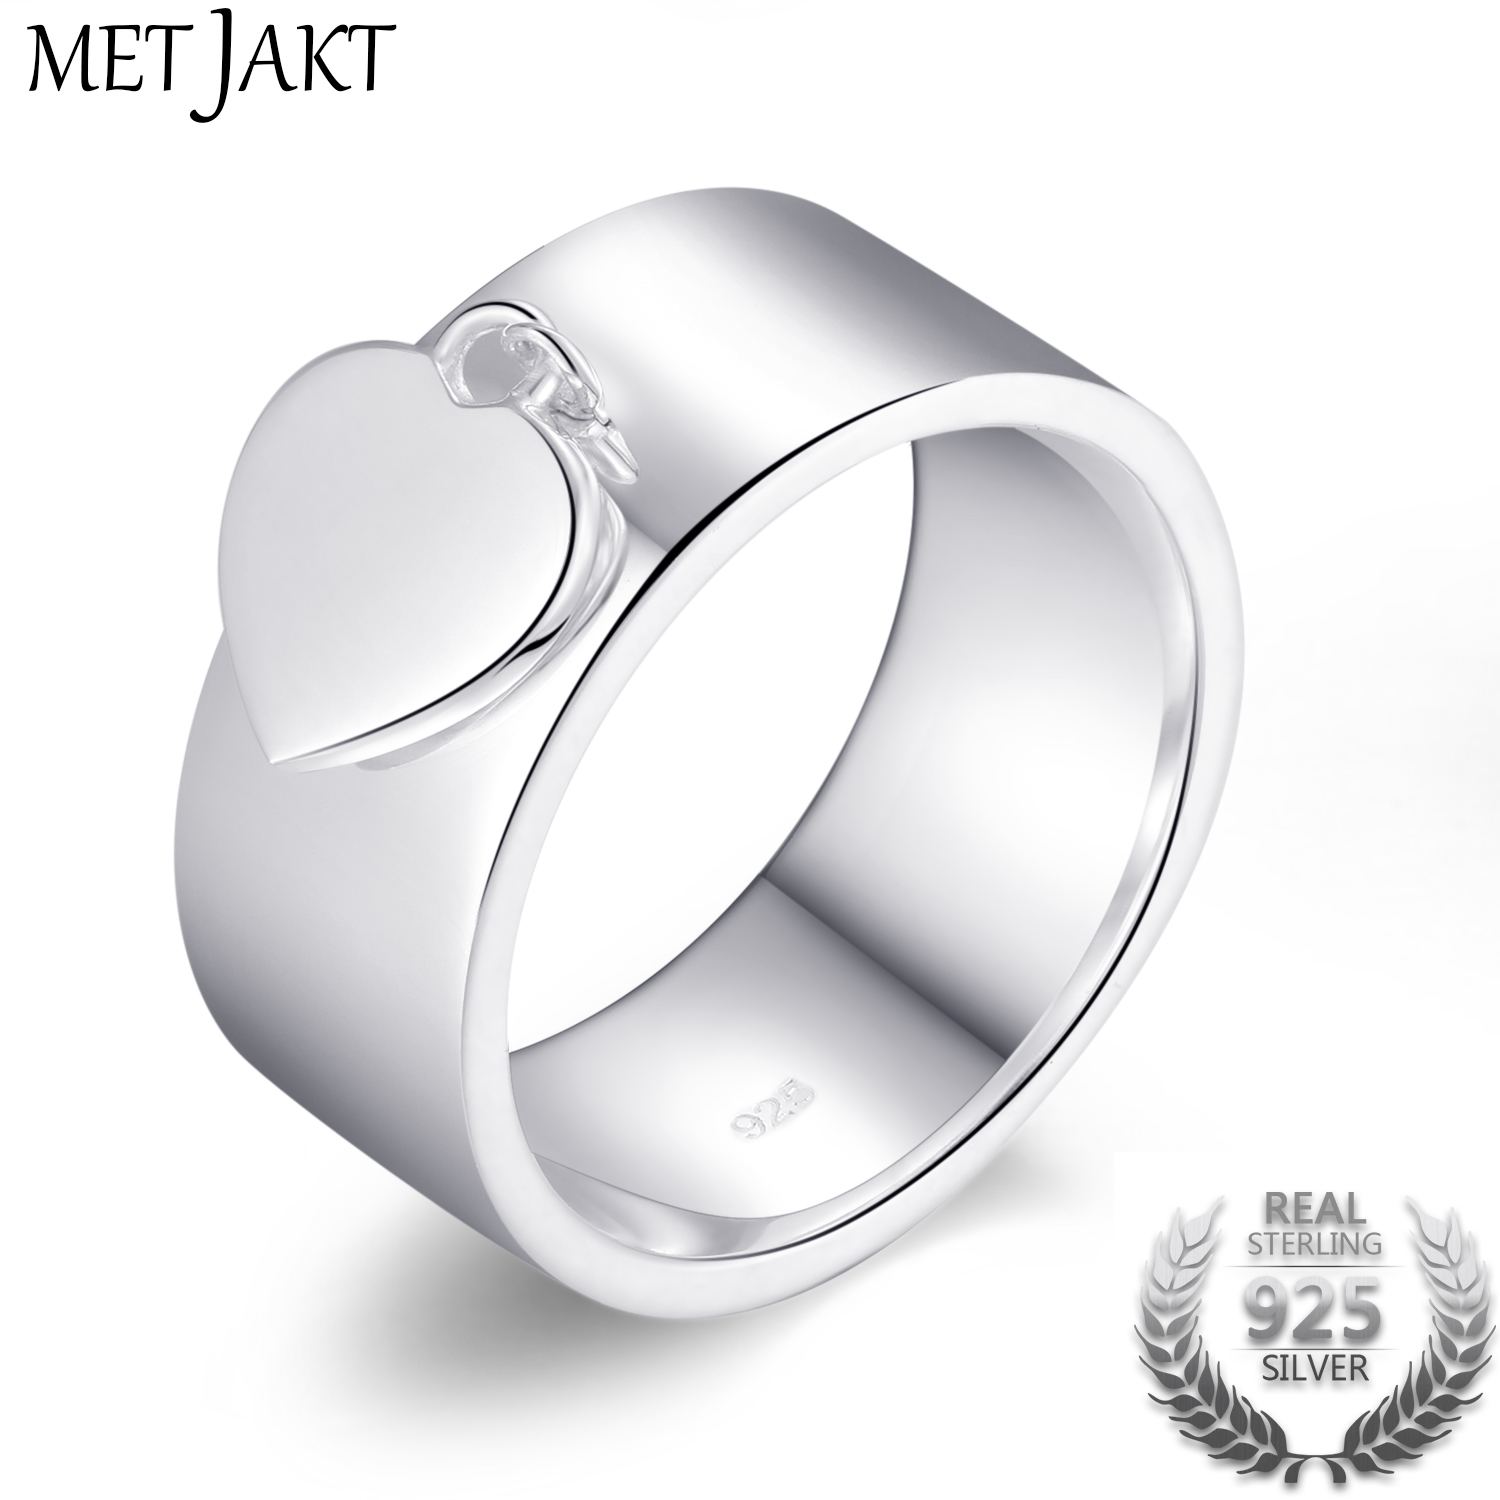 MetJakt Classic 925 Sterling Silver Heart Charm Rings for Girlfriend Mother Friend Perfect Gift Love Ring